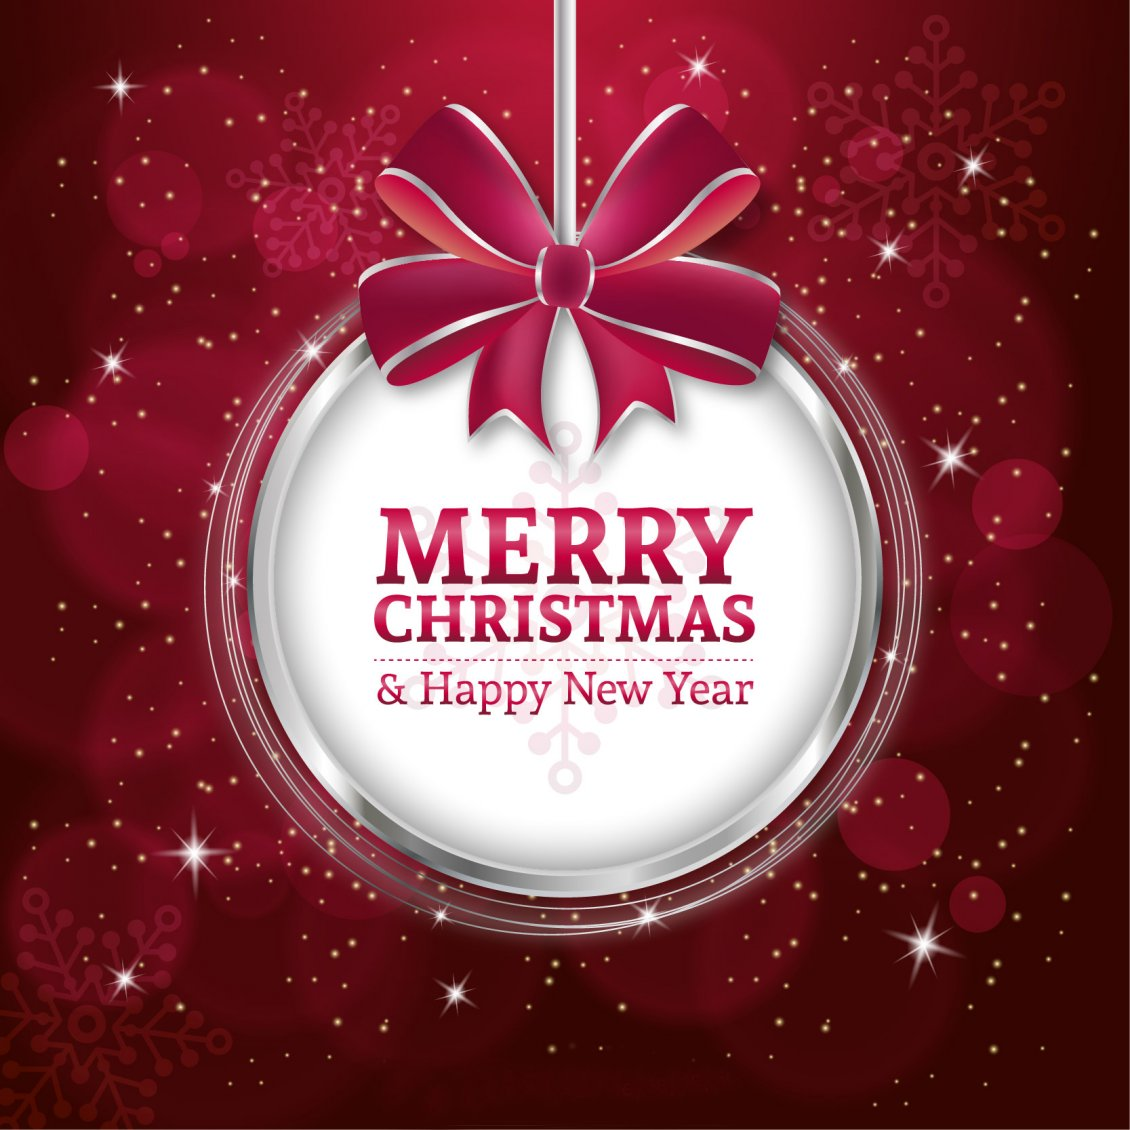 Wonderful red wallpaper - Merry Christmas and Happy New Year